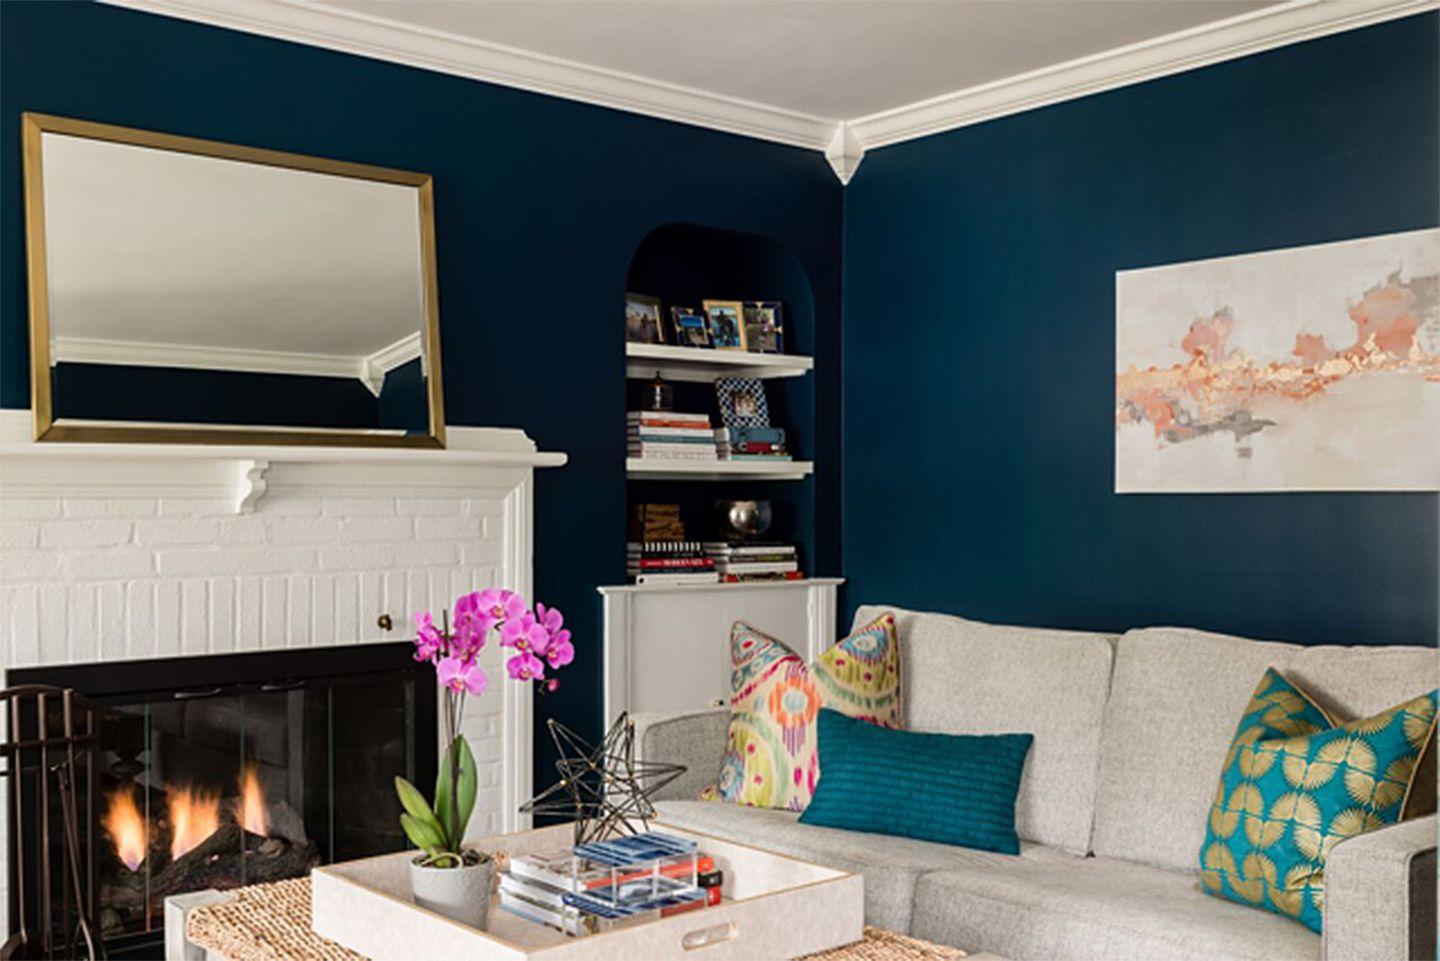 How to pull off navy blue walls - The Boston Globe